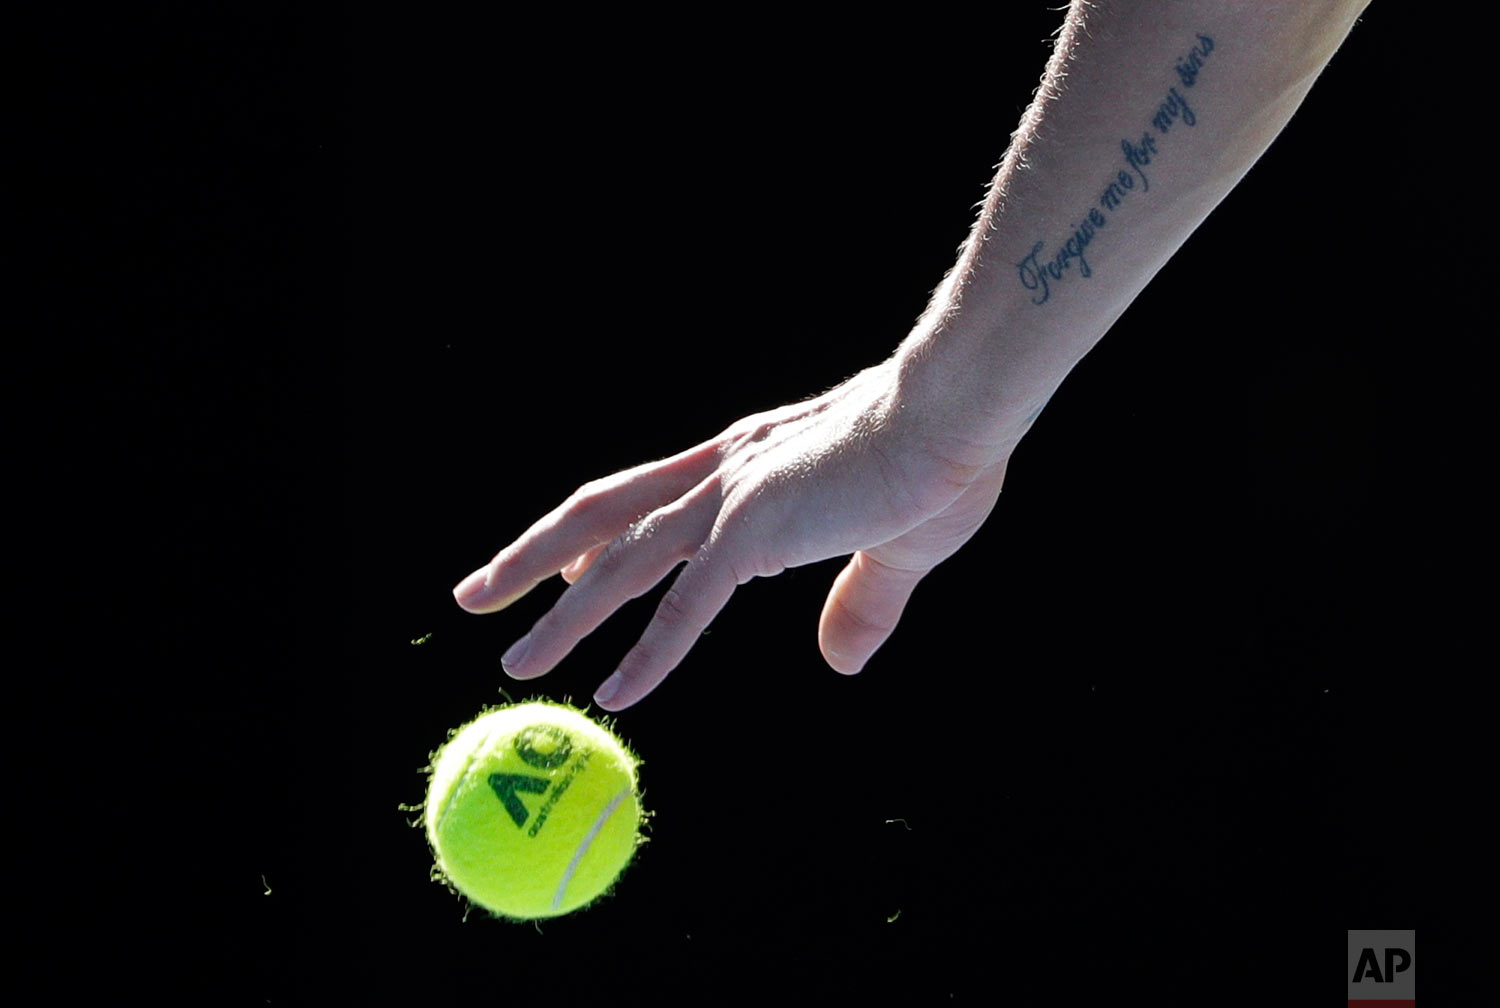 Hungary's Marton Fucsovics prepares to serve to Switzerland's Roger Federer during their fourth round match at the Australian Open tennis championships in Melbourne, Australia, Monday, Jan. 22, 2018. (AP Photo/Dita Alangkara)